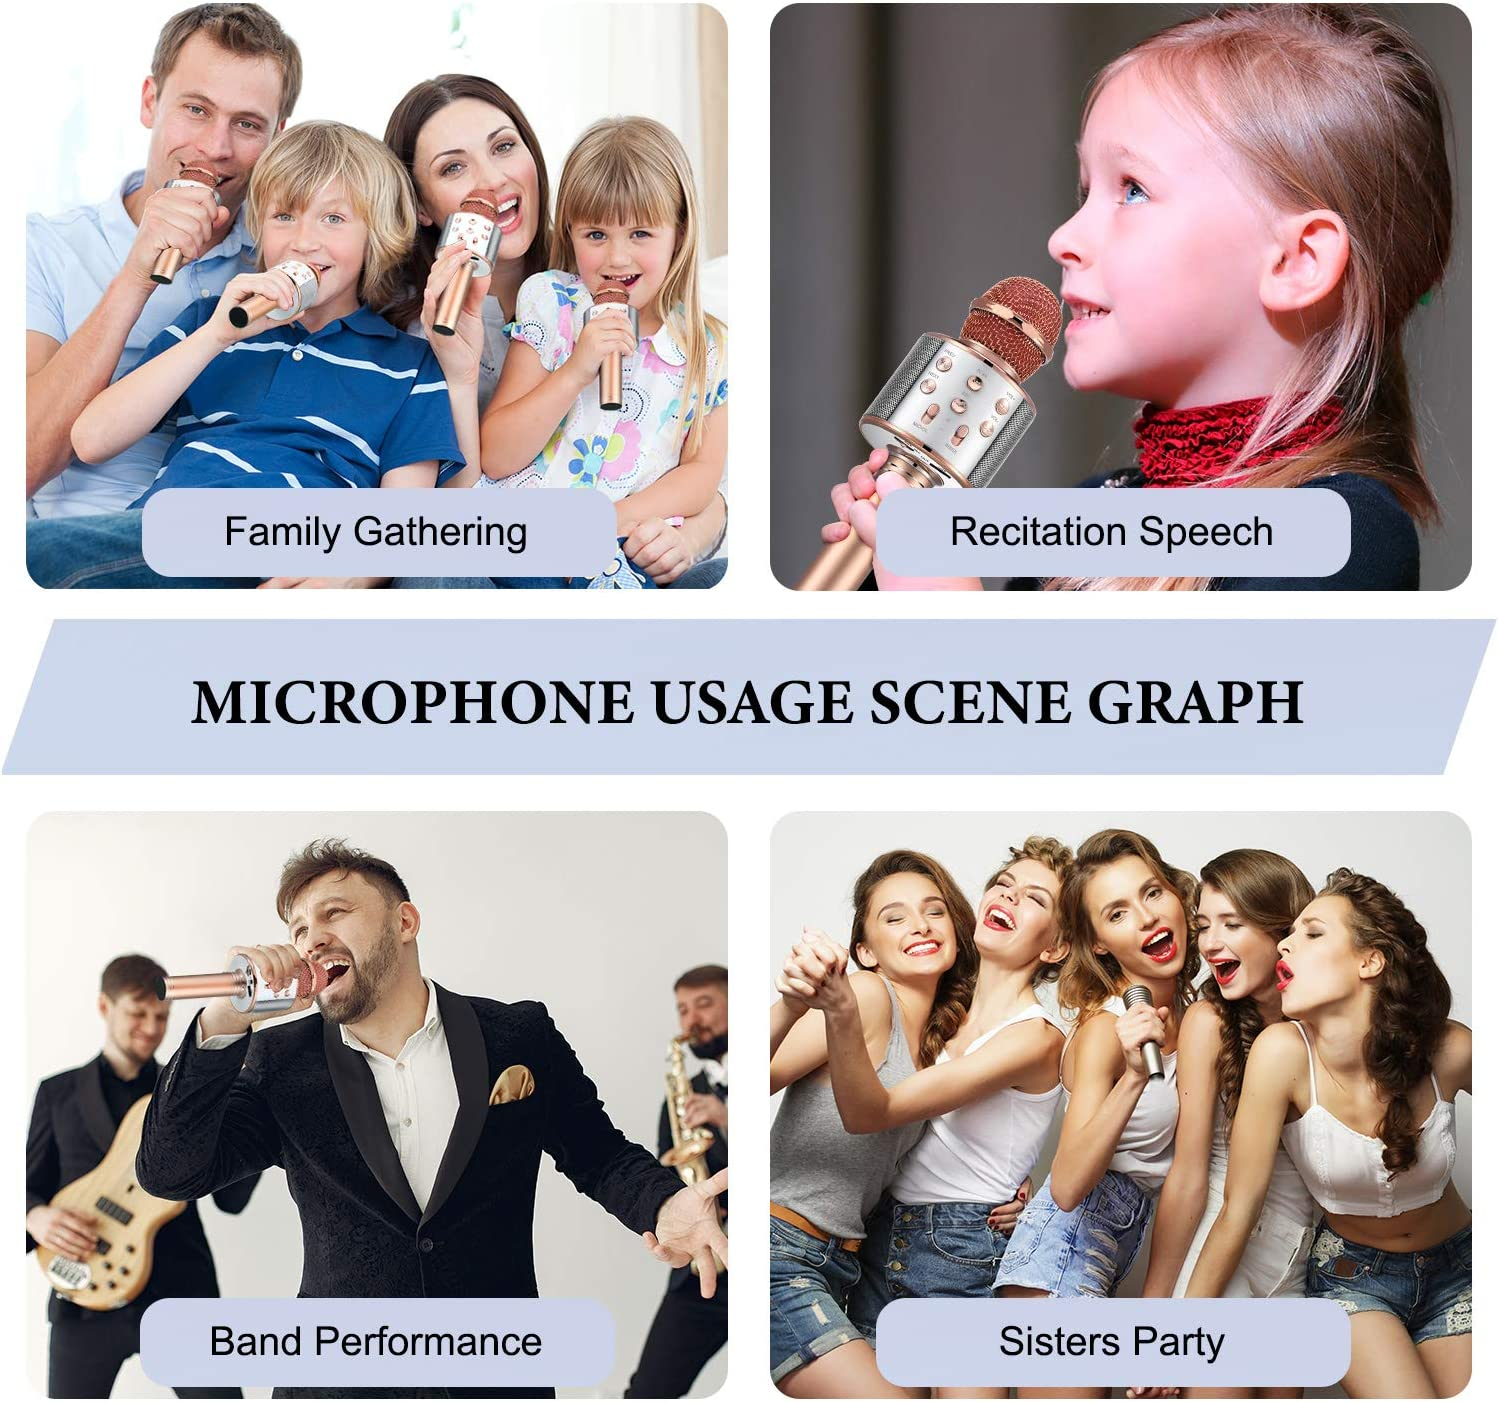 Rose Gold Wireless Karaoke Bluetooth Microphone Handheld Karaoke Speaker 3-in-1 Portable Microphone Christmas Birthday Home Party Supplies for Mobile Phone Laptop